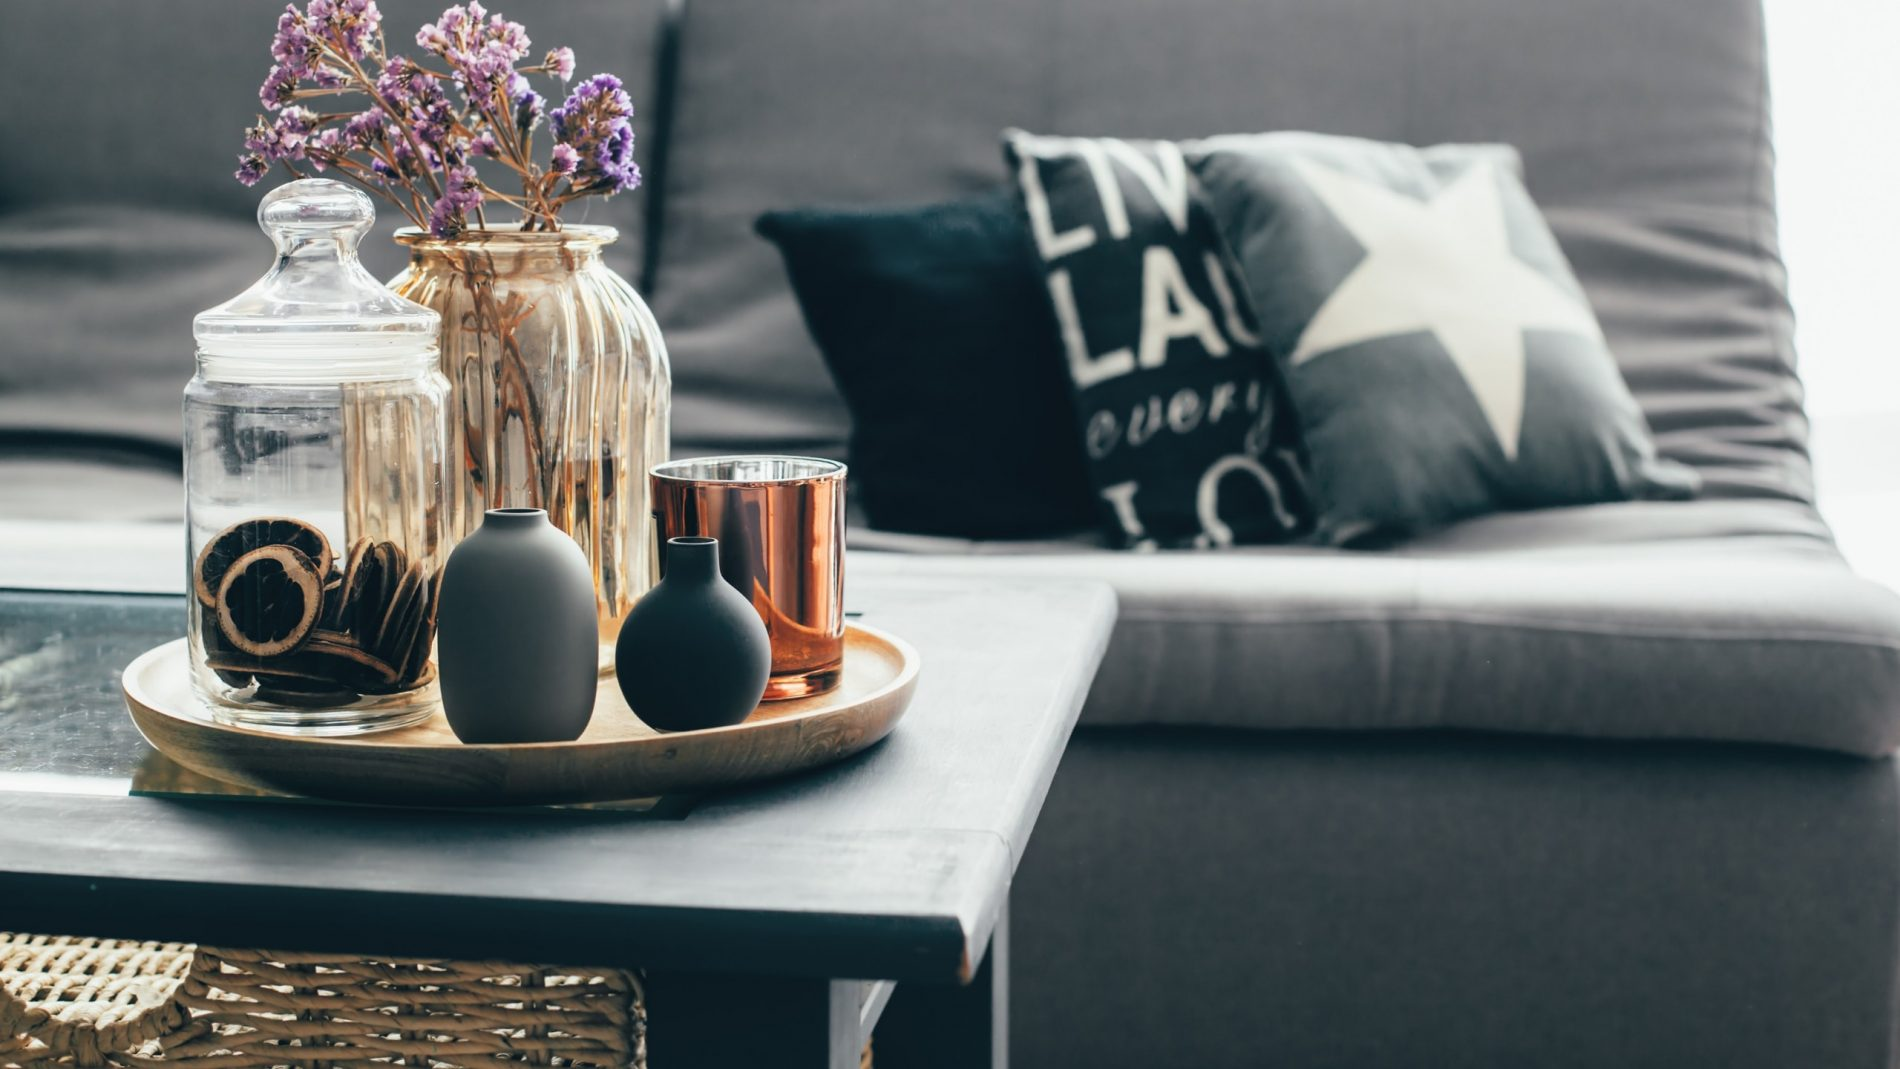 5 Lamp Tables that will look great in any small apartment